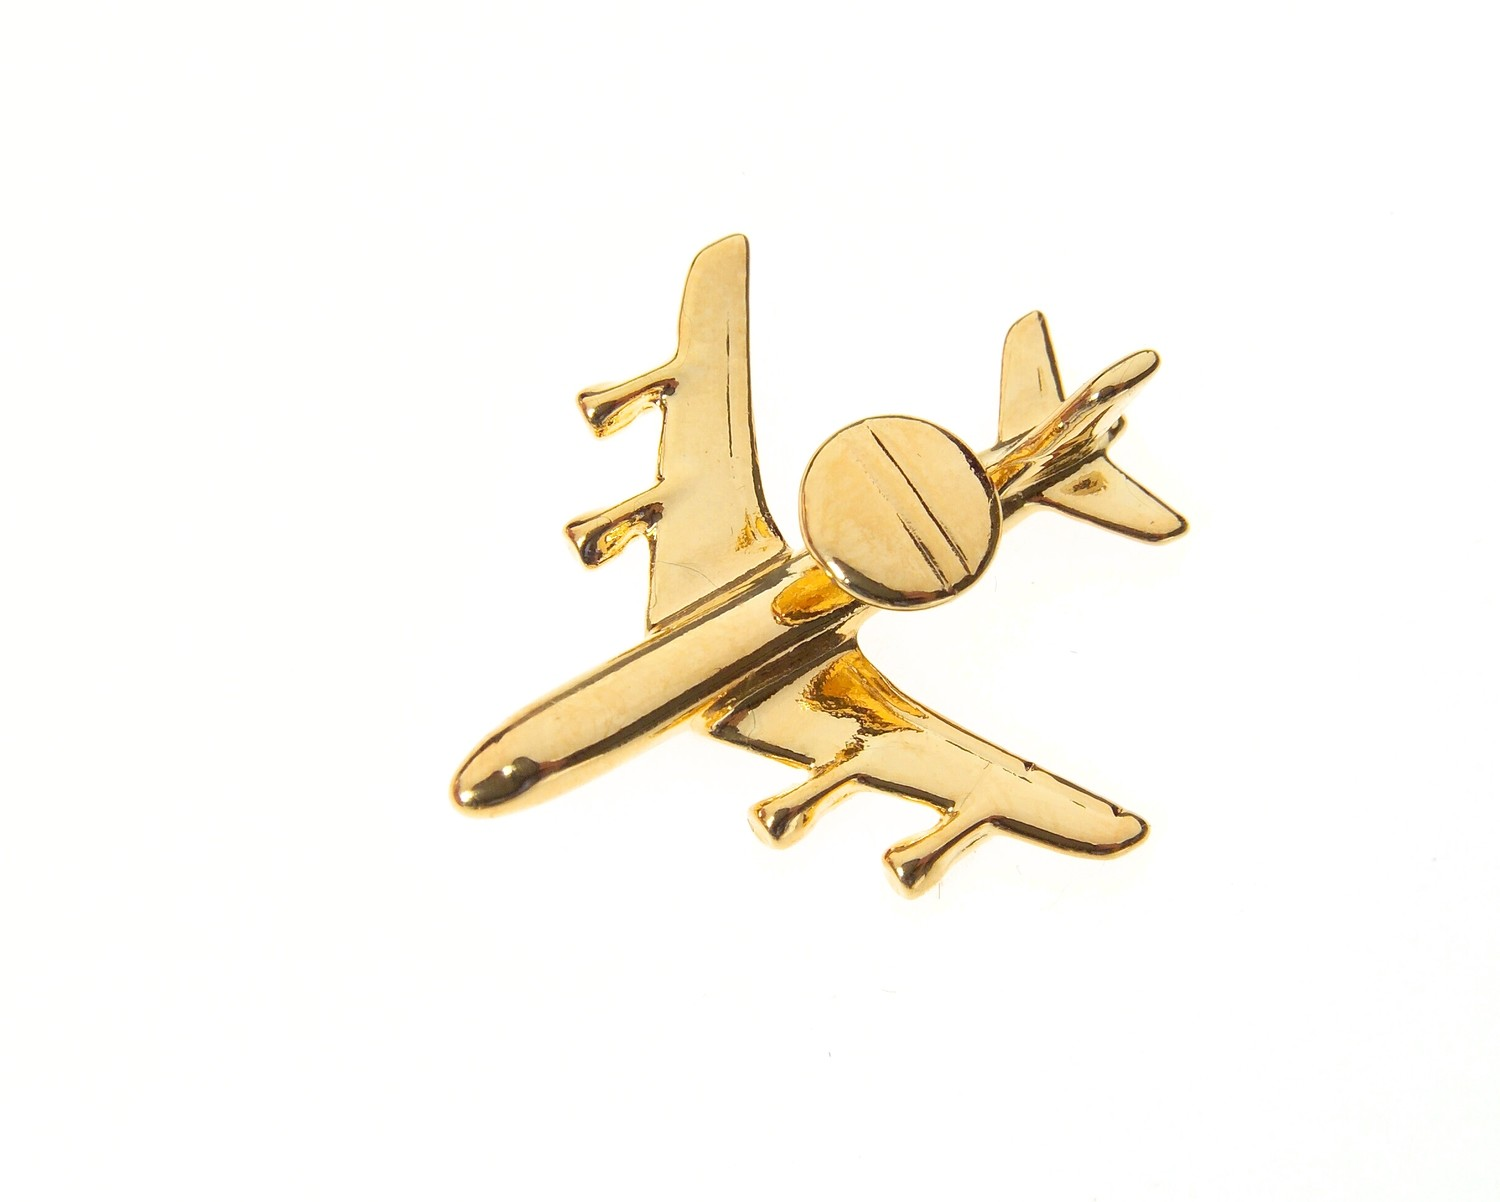 E3-D Sentry Gold Plated Tie / Lapel Pin